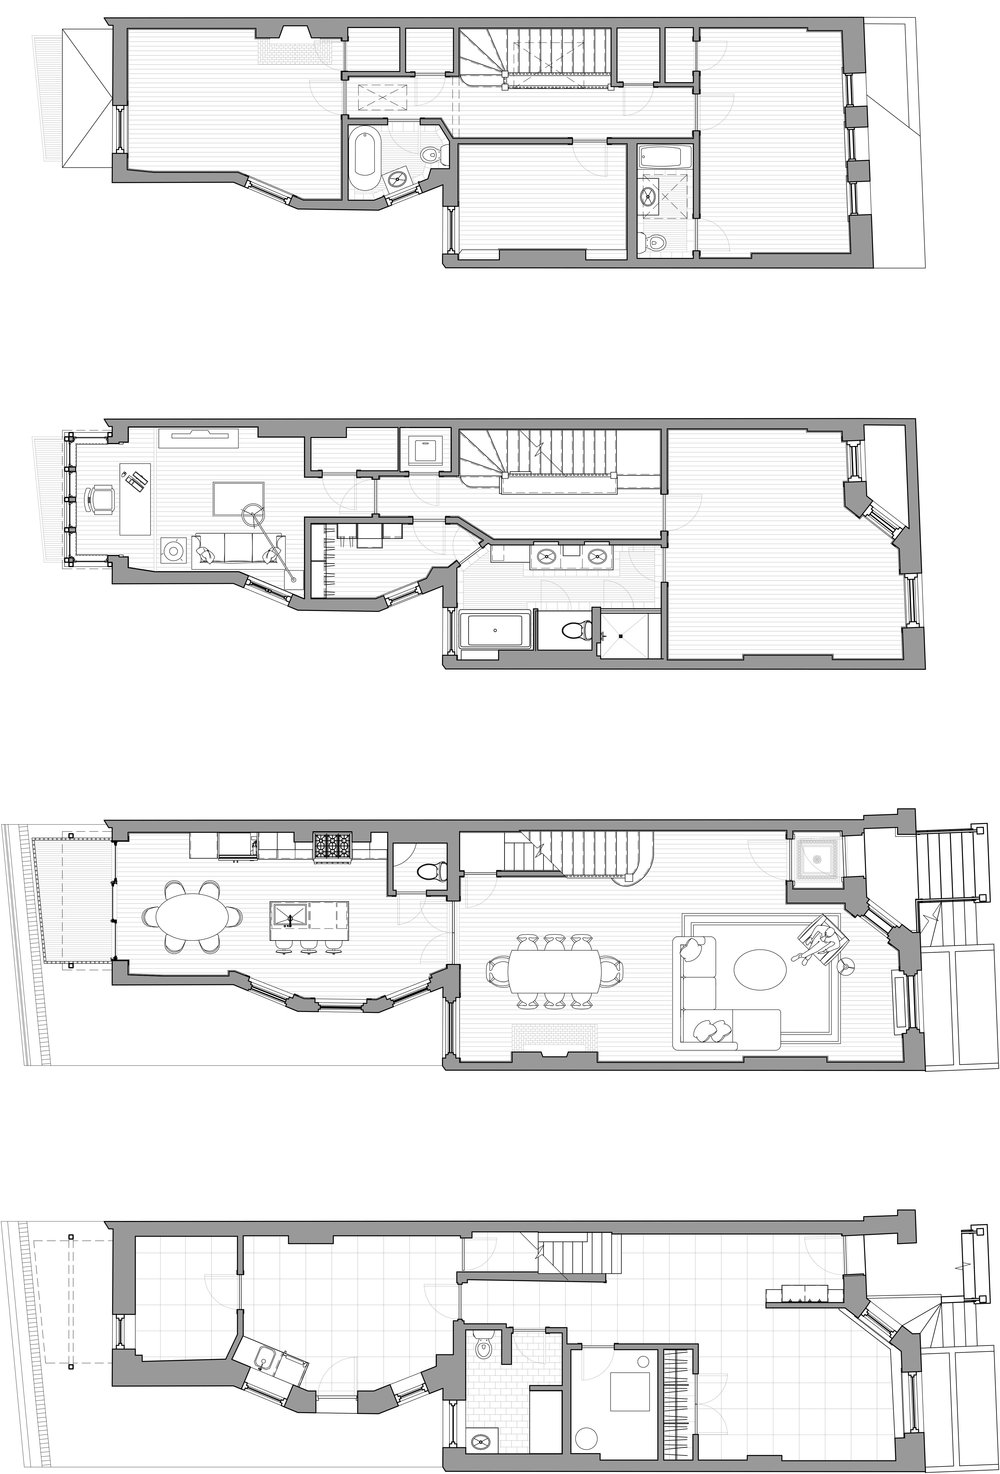 Basement, First, Second, & Third Floor Plans of 1304 N. Ritchie Court